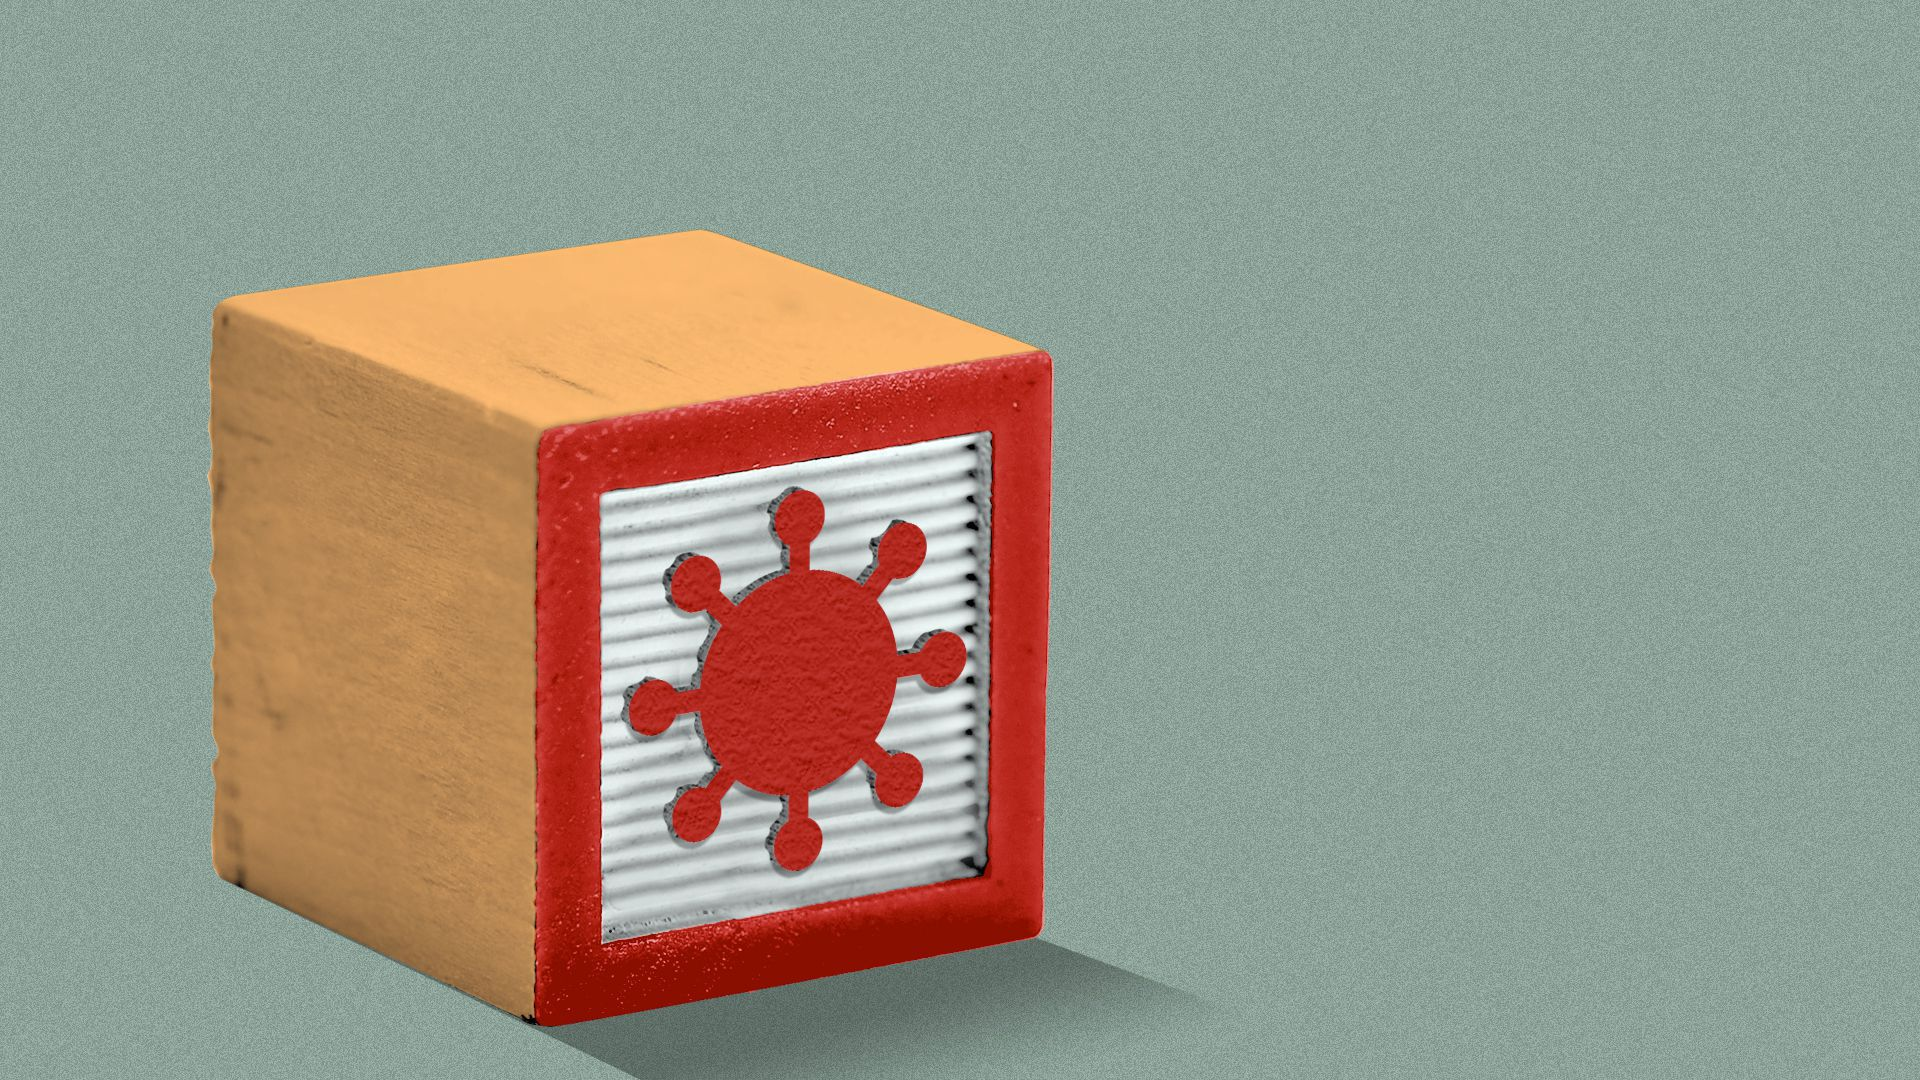 Illustration of a kids' building block toy with a covid particle on the side.